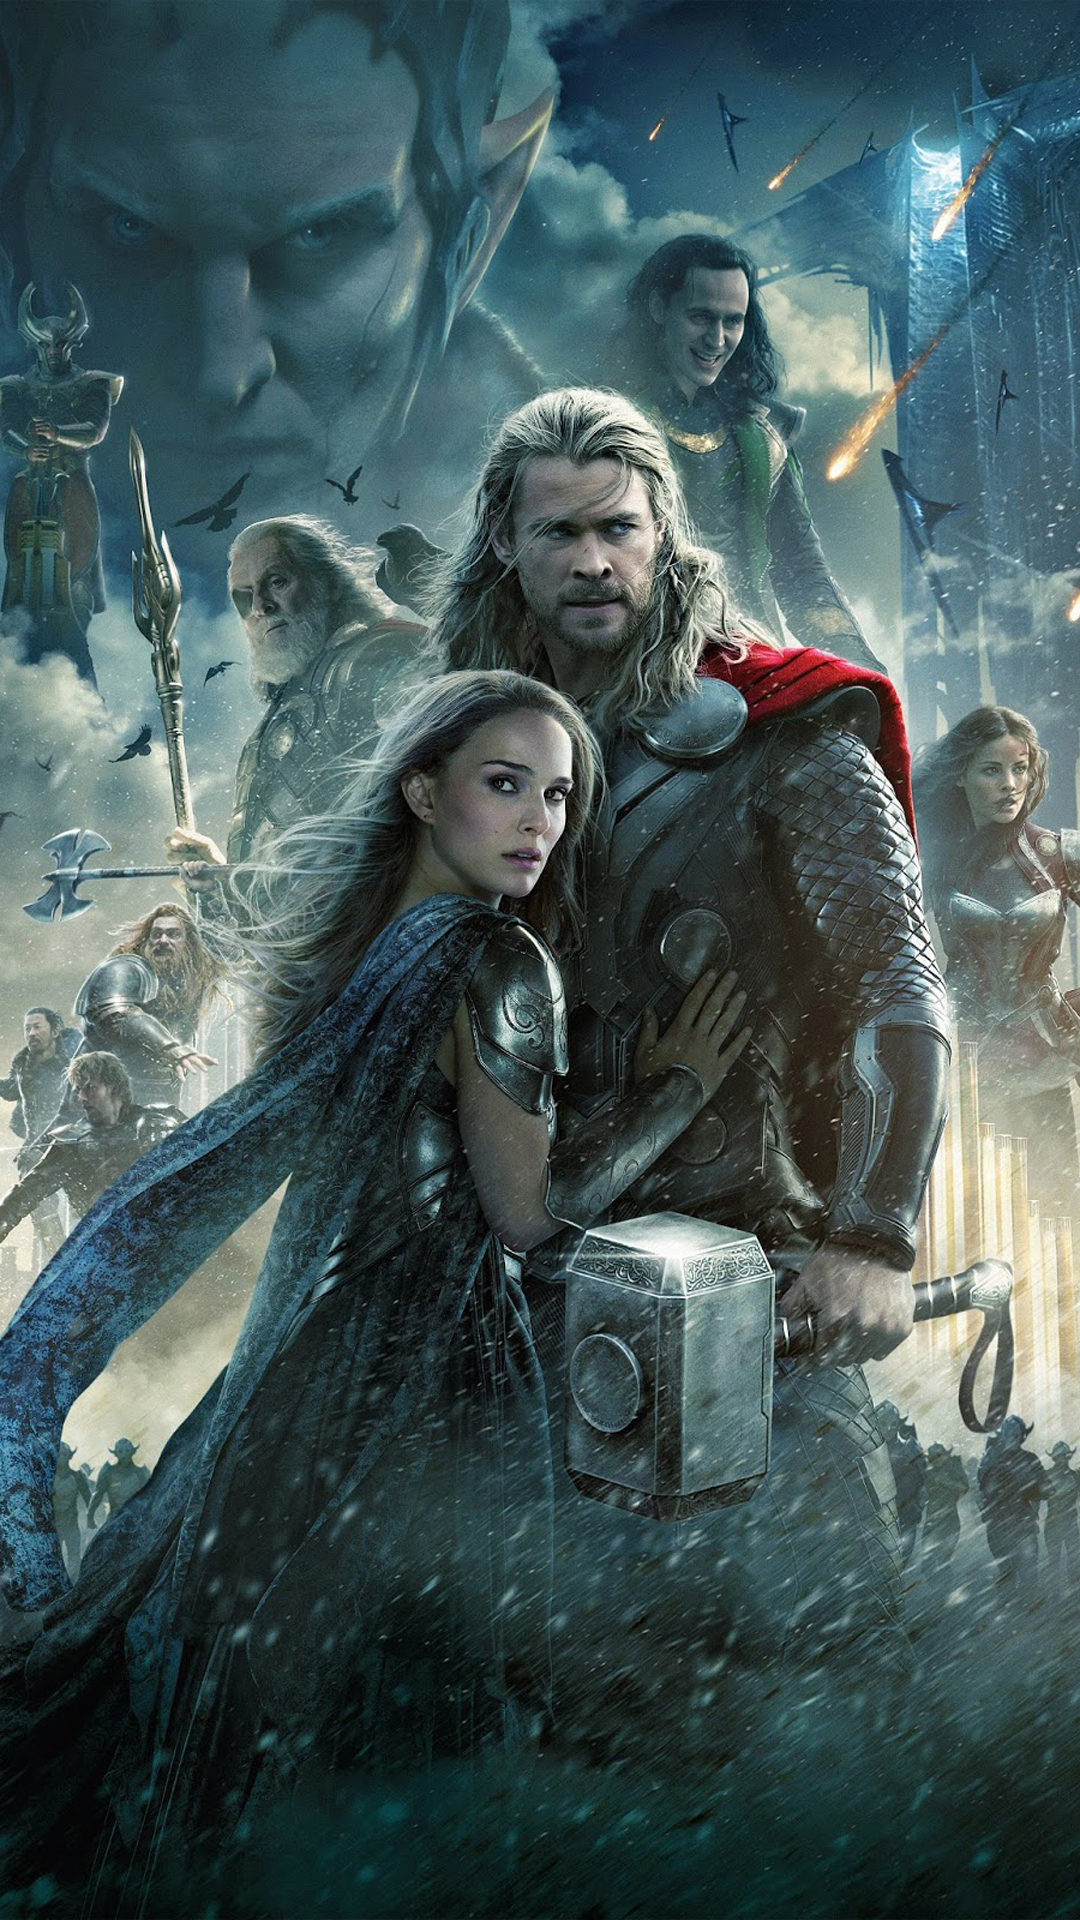 thor the dark world - best htc one wallpapers, free and easy to download